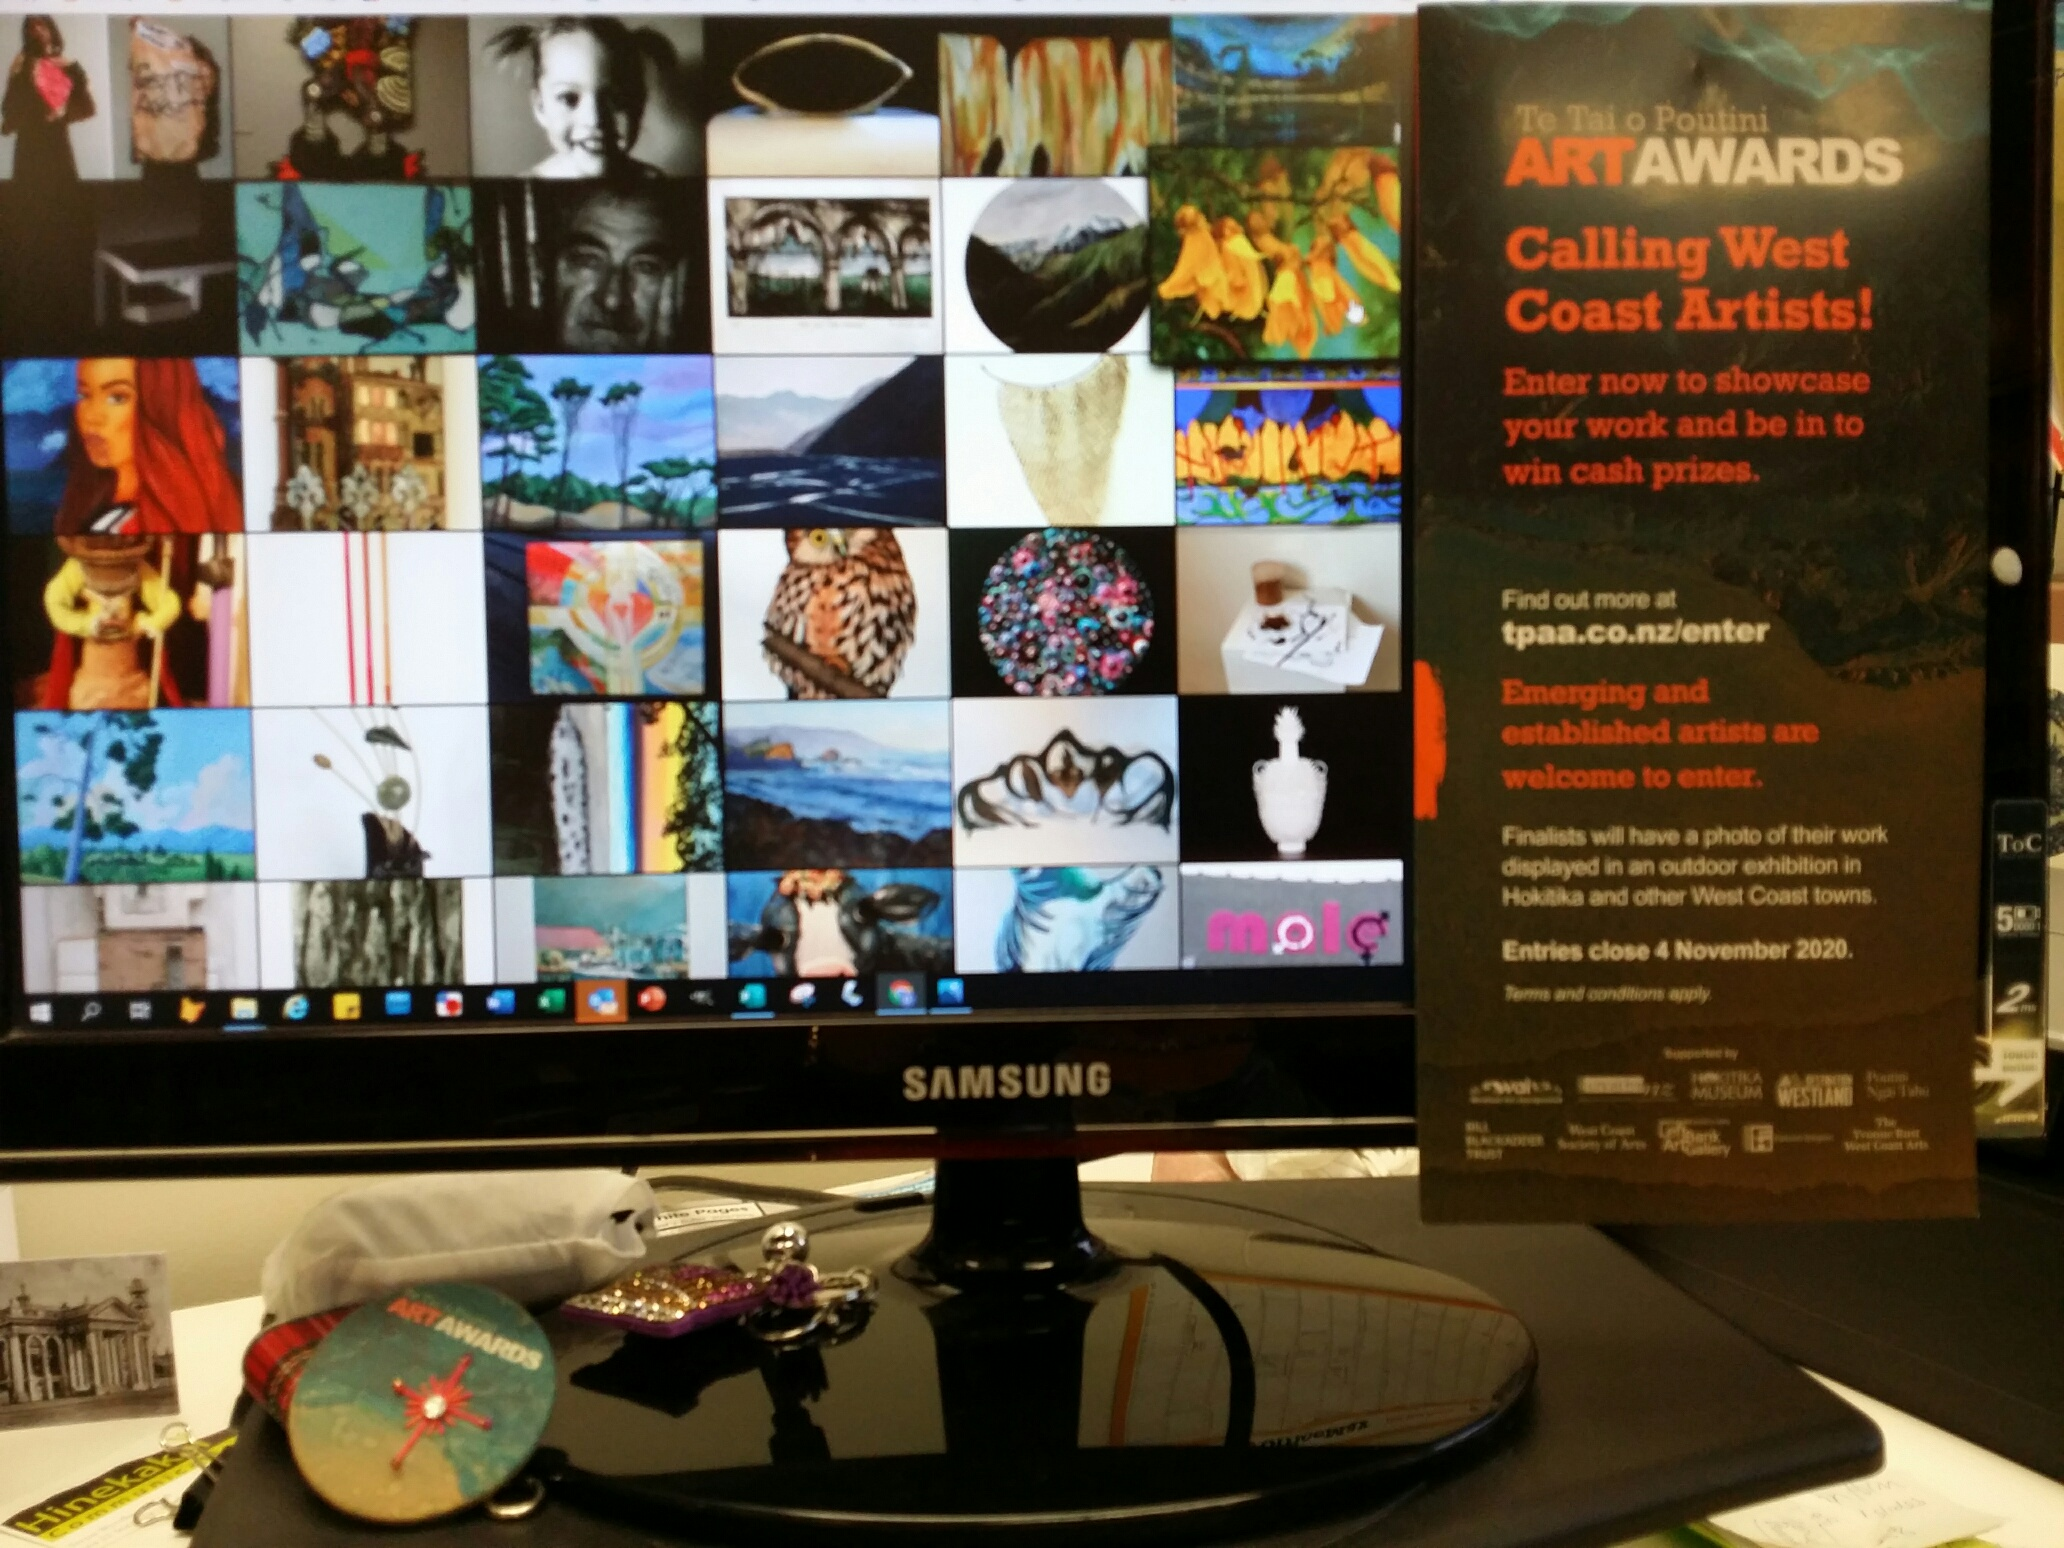 Artwork entries displayed on a computer screen